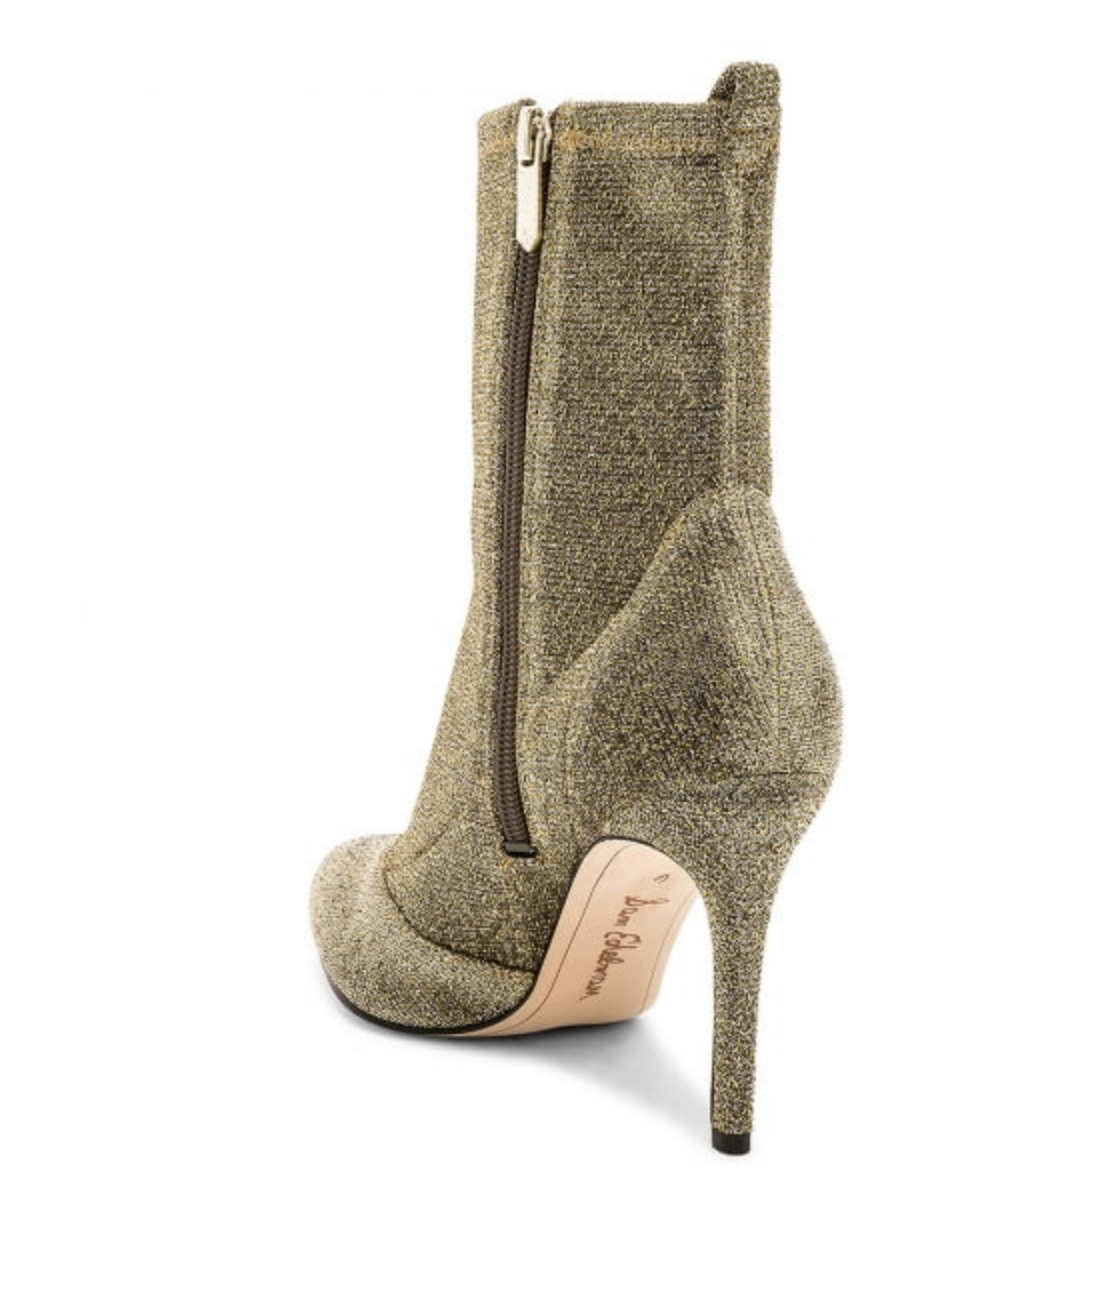 e059c7c63 Sam Edelman Olson Gold Metallic-knit Sock Boots